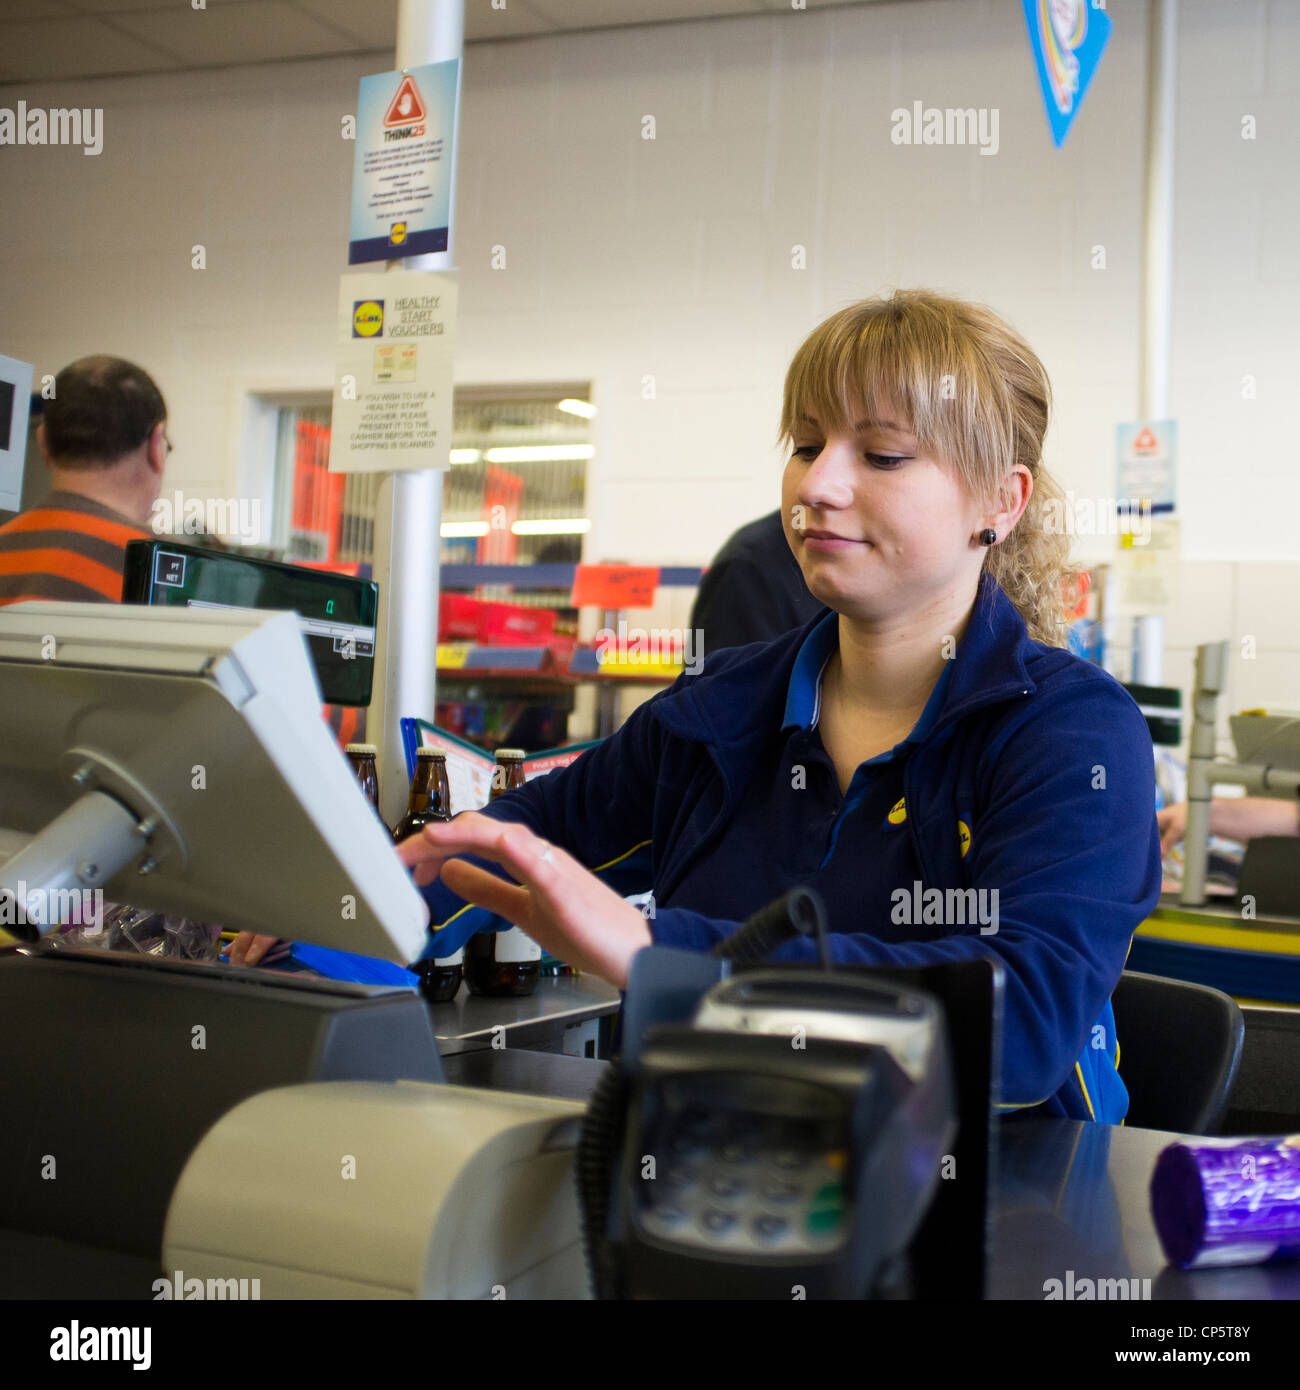 a young woman working at a Lidl supermarket checkout, UK - Stock Image